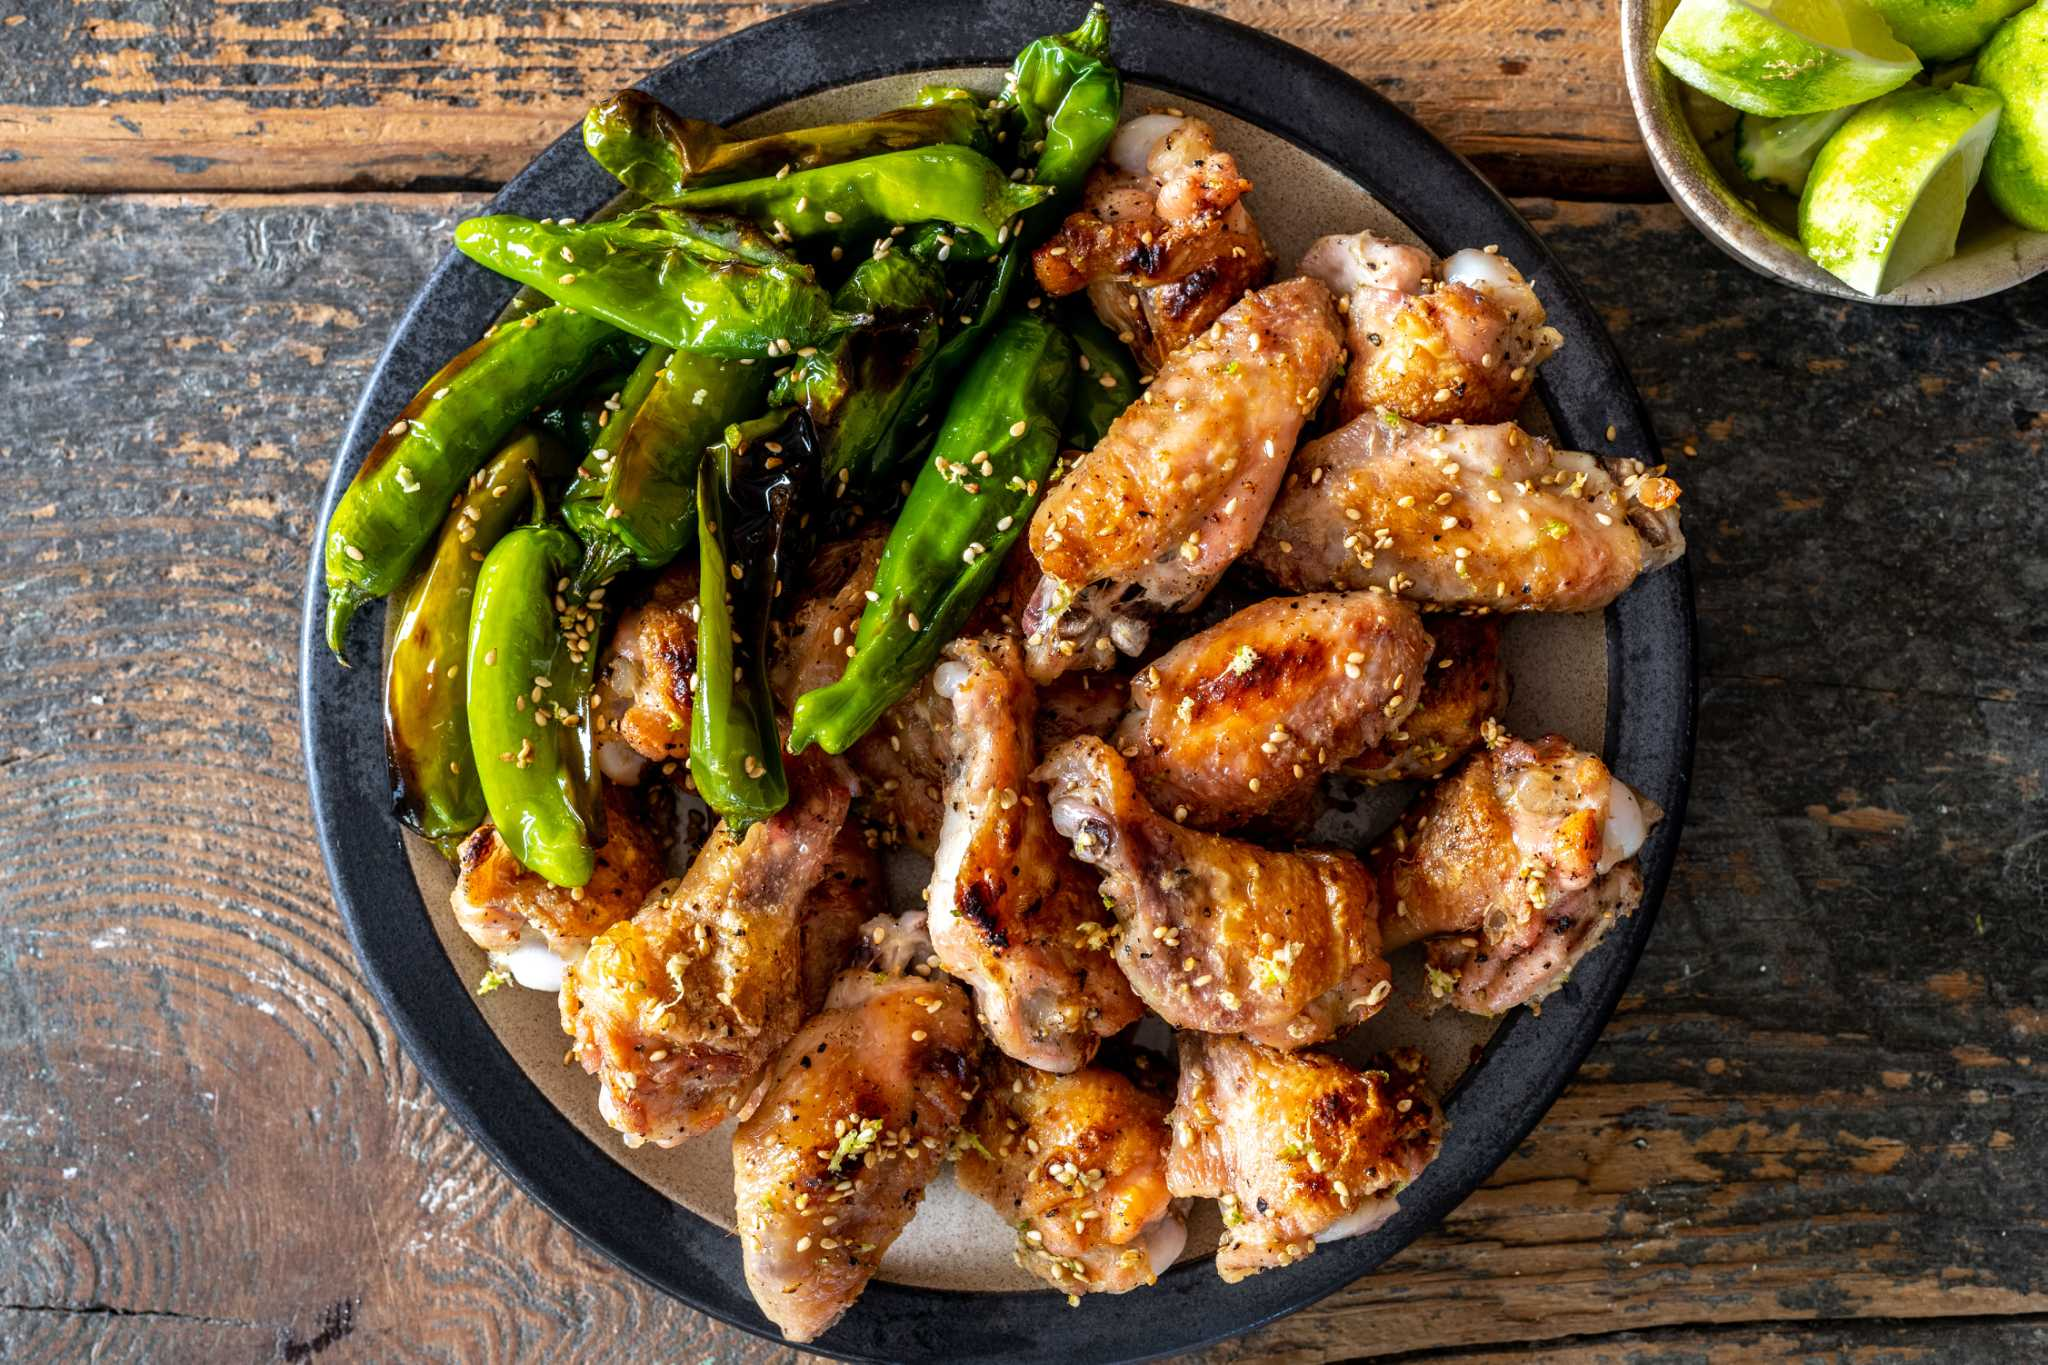 The secret to super-crispy chicken wings? Brine them and roast them - no frying needed.